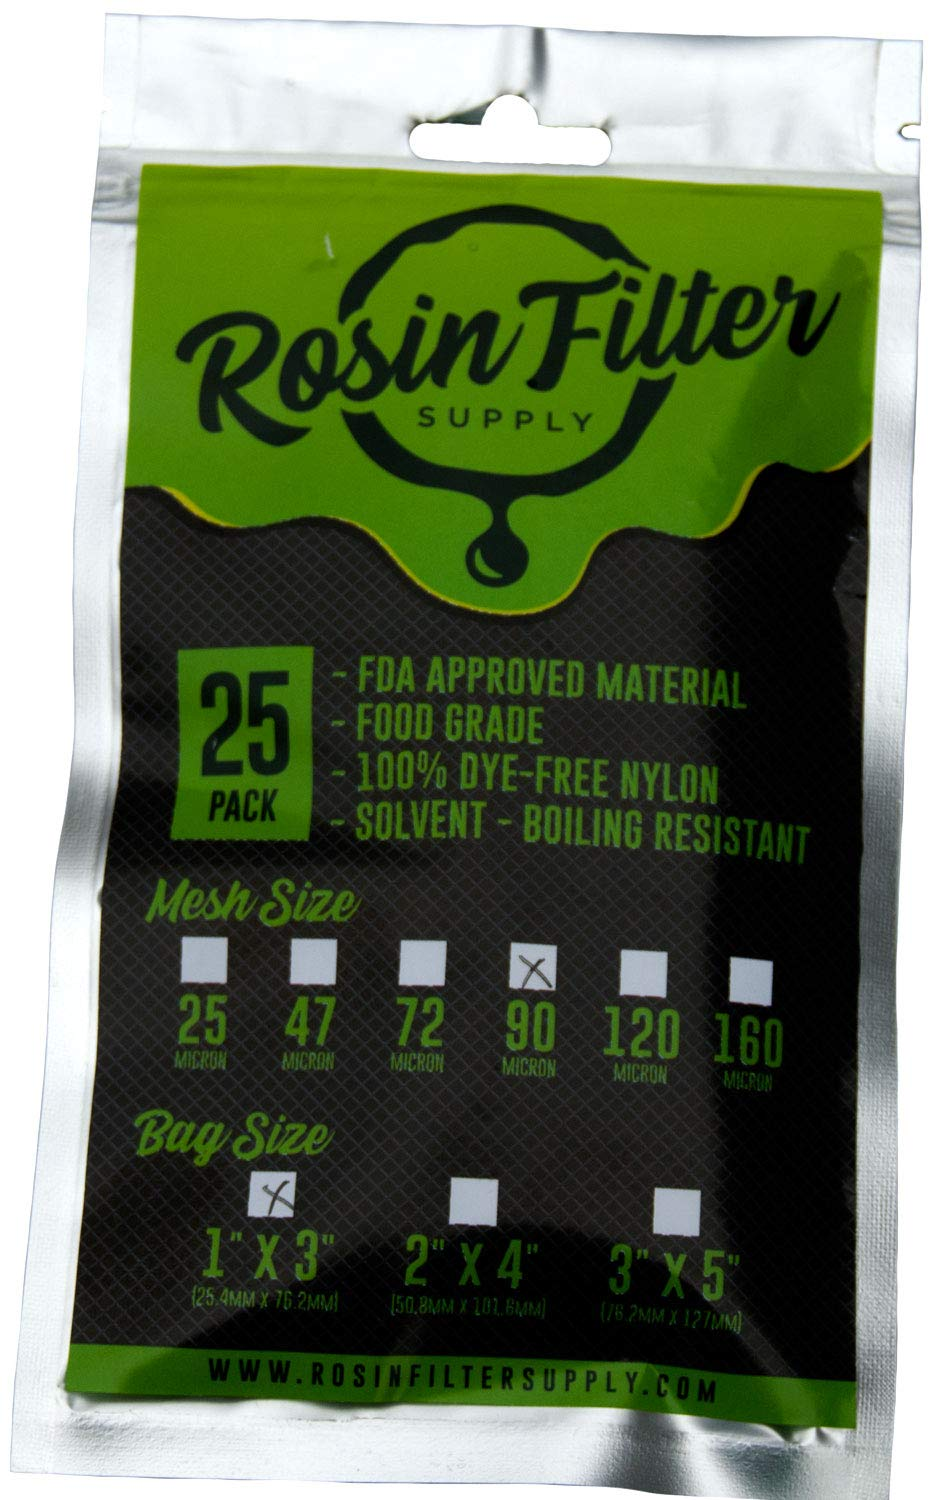 Rosin Filter Supply Bags 1 x 3 Nylon Screens 160 Micron, 10